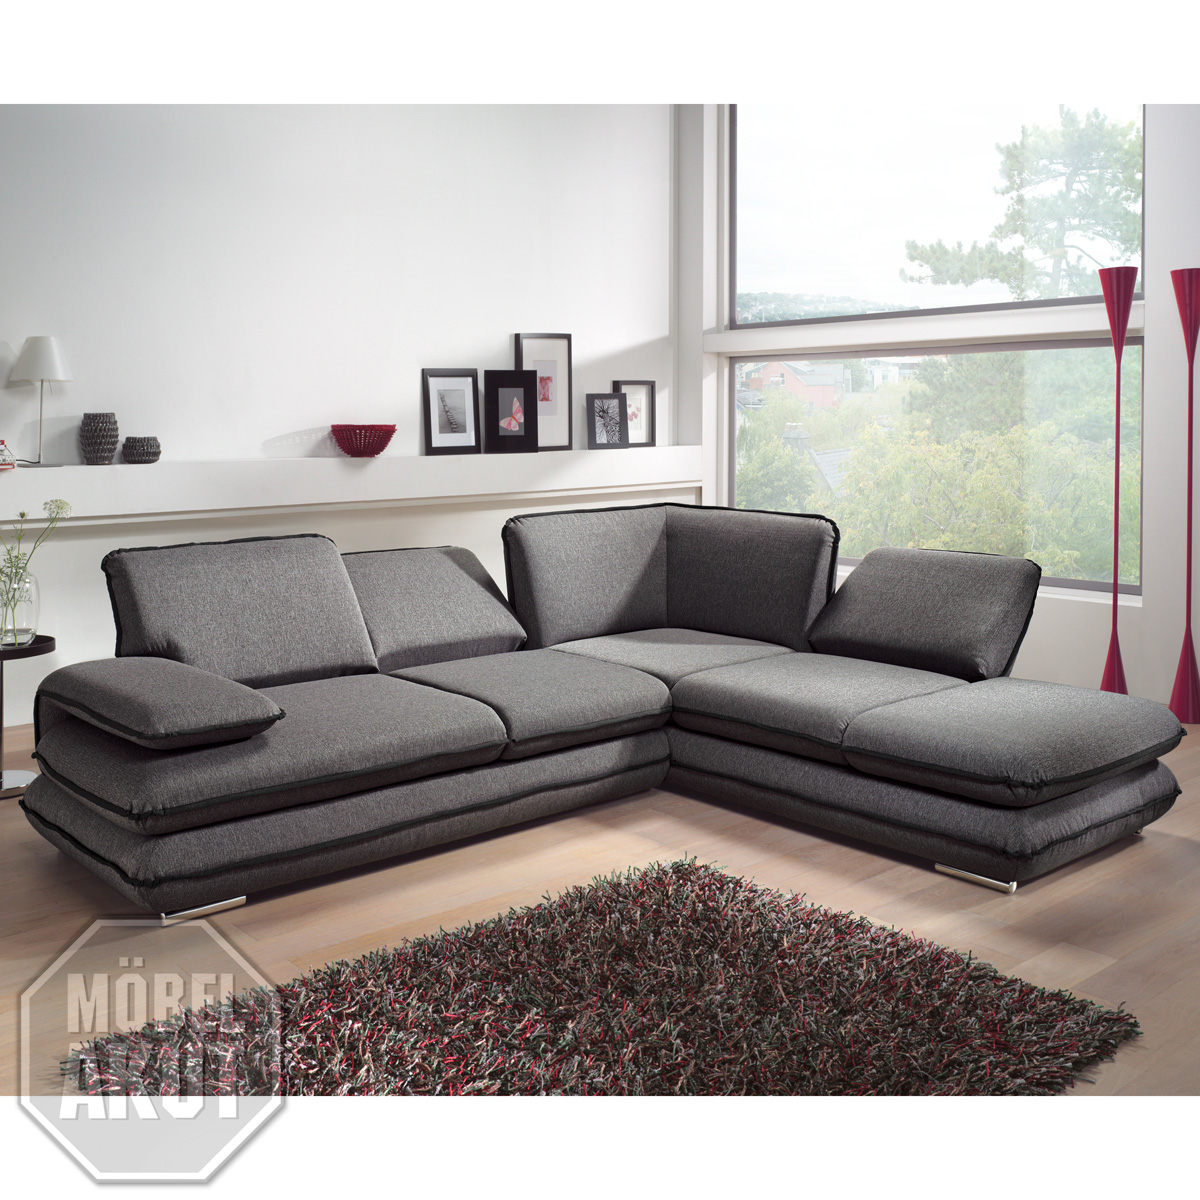 ecksofa leder relaxfunktion inspirierendes design f r wohnm bel. Black Bedroom Furniture Sets. Home Design Ideas